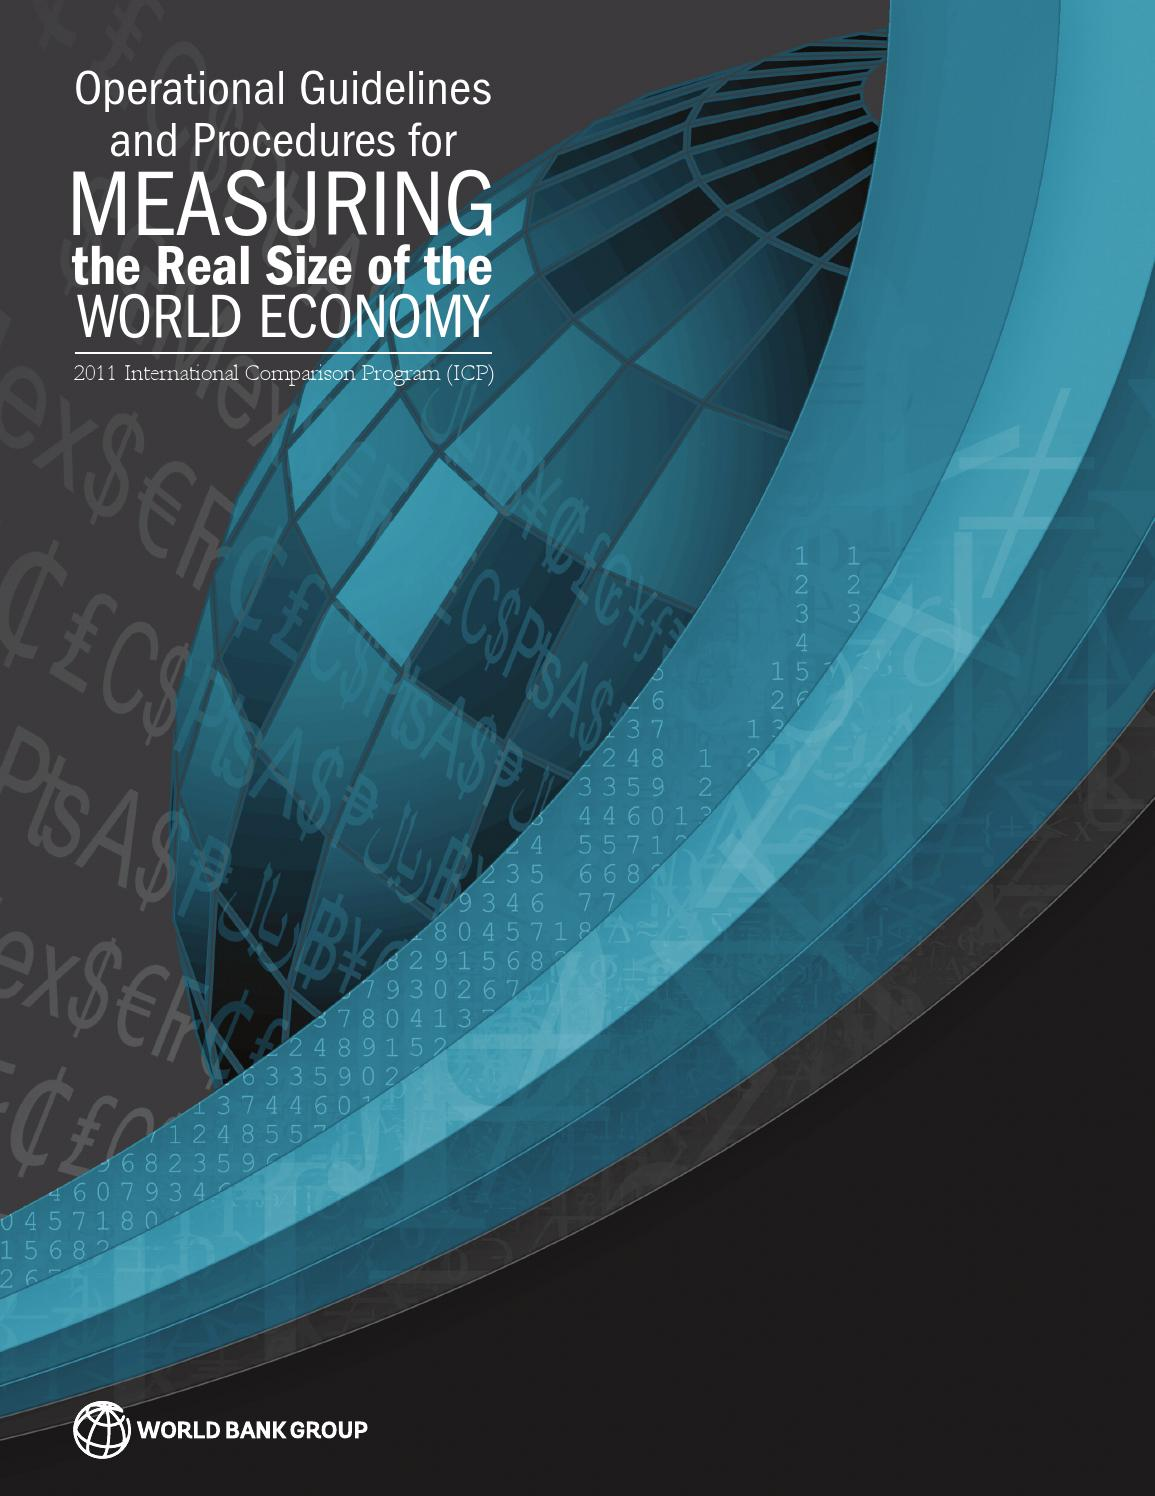 Operational Guidelines And Procedures For Measuring The Real